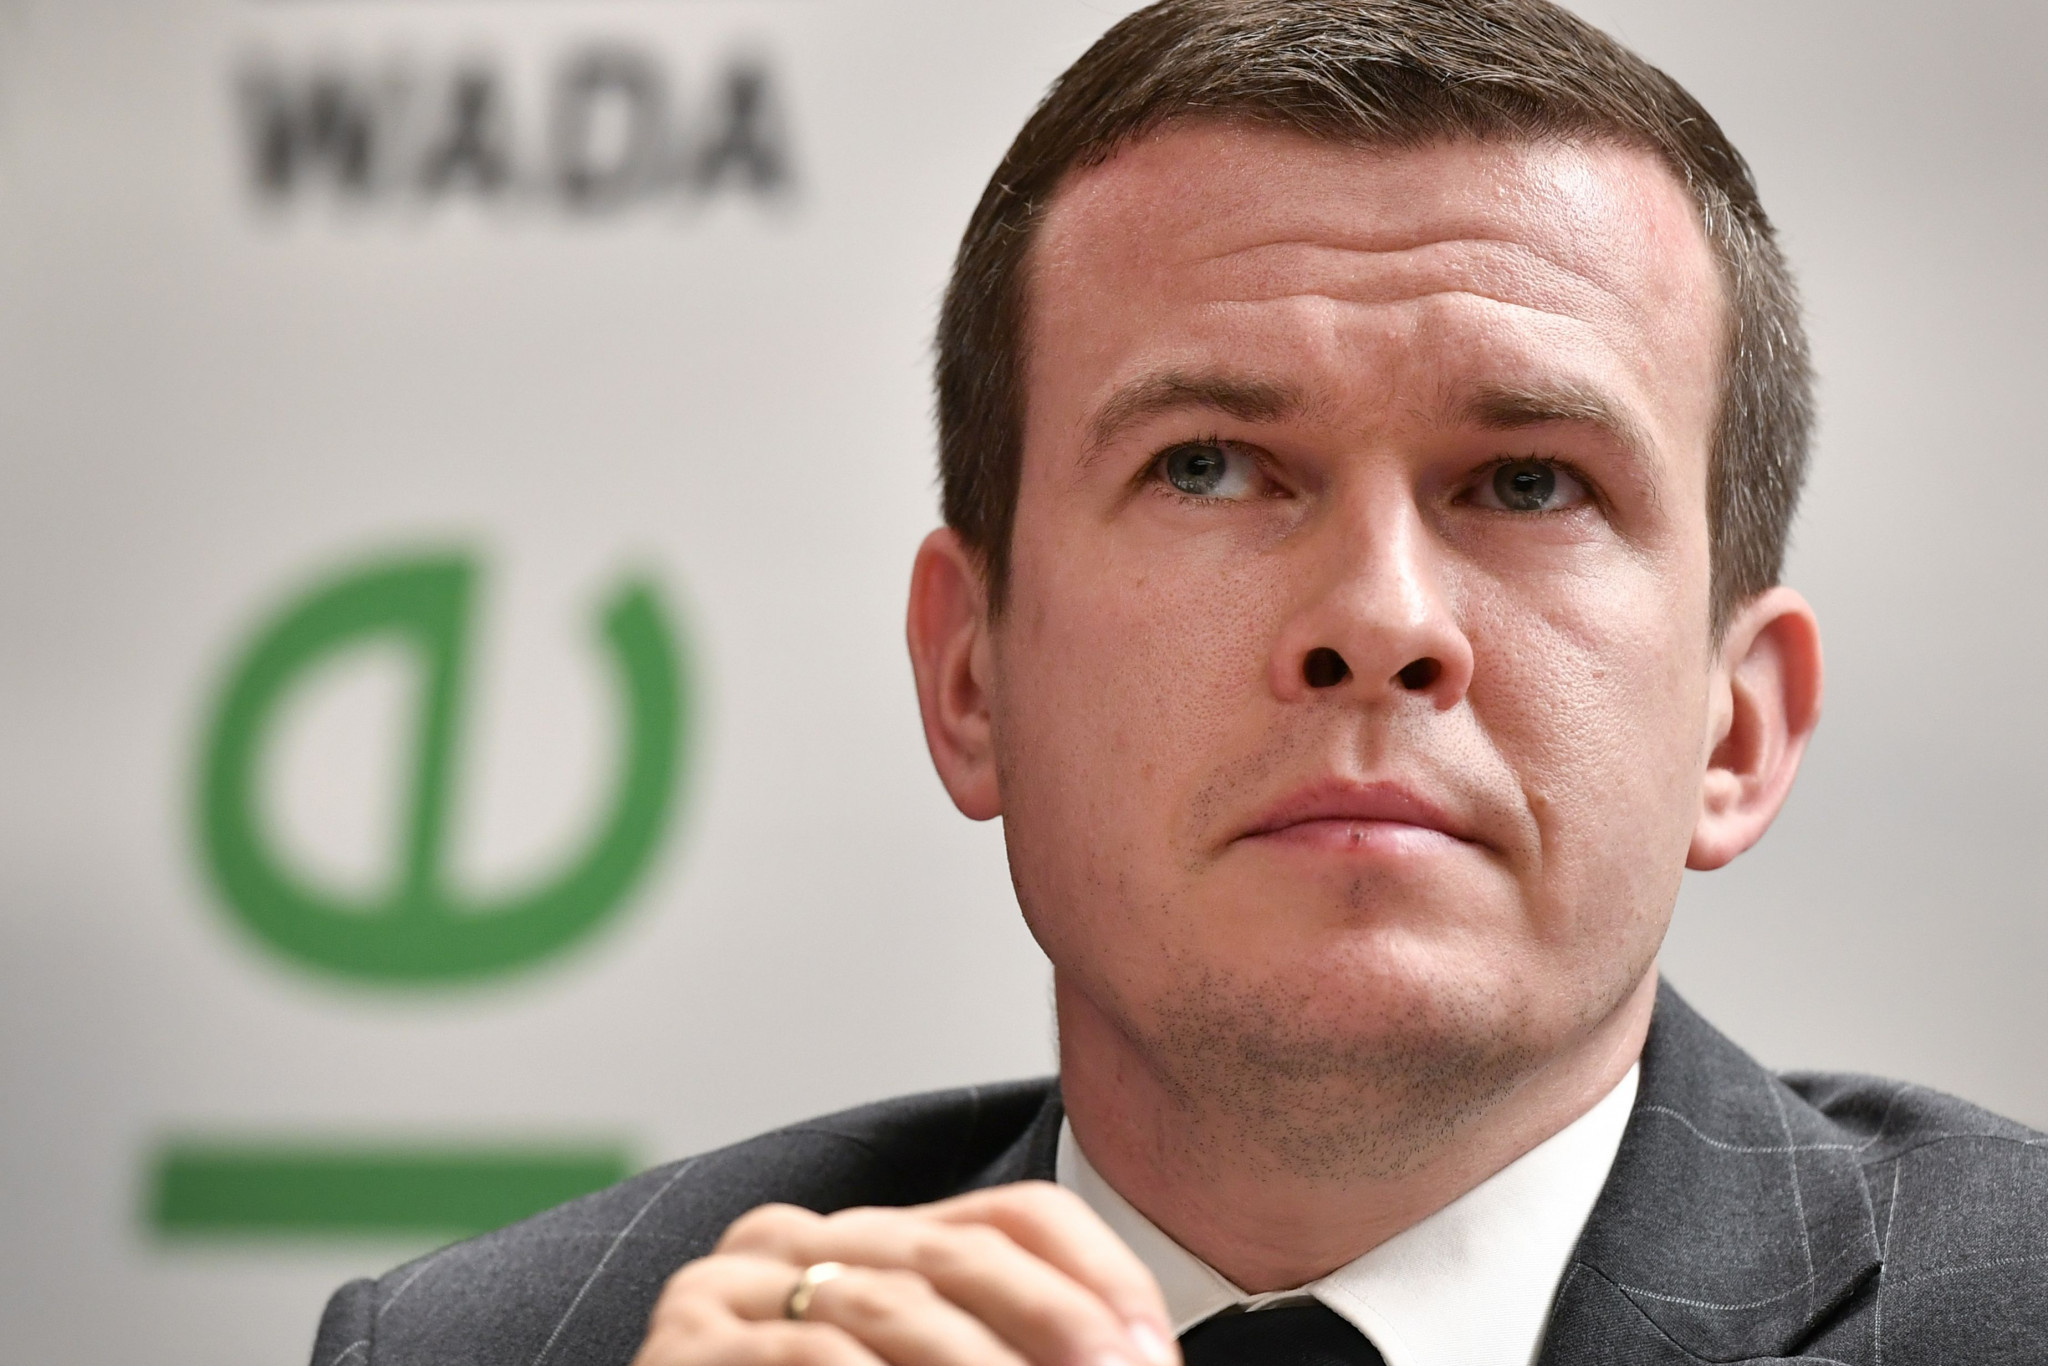 WADA keen to work collaboratively with United States on ongoing governance reforms